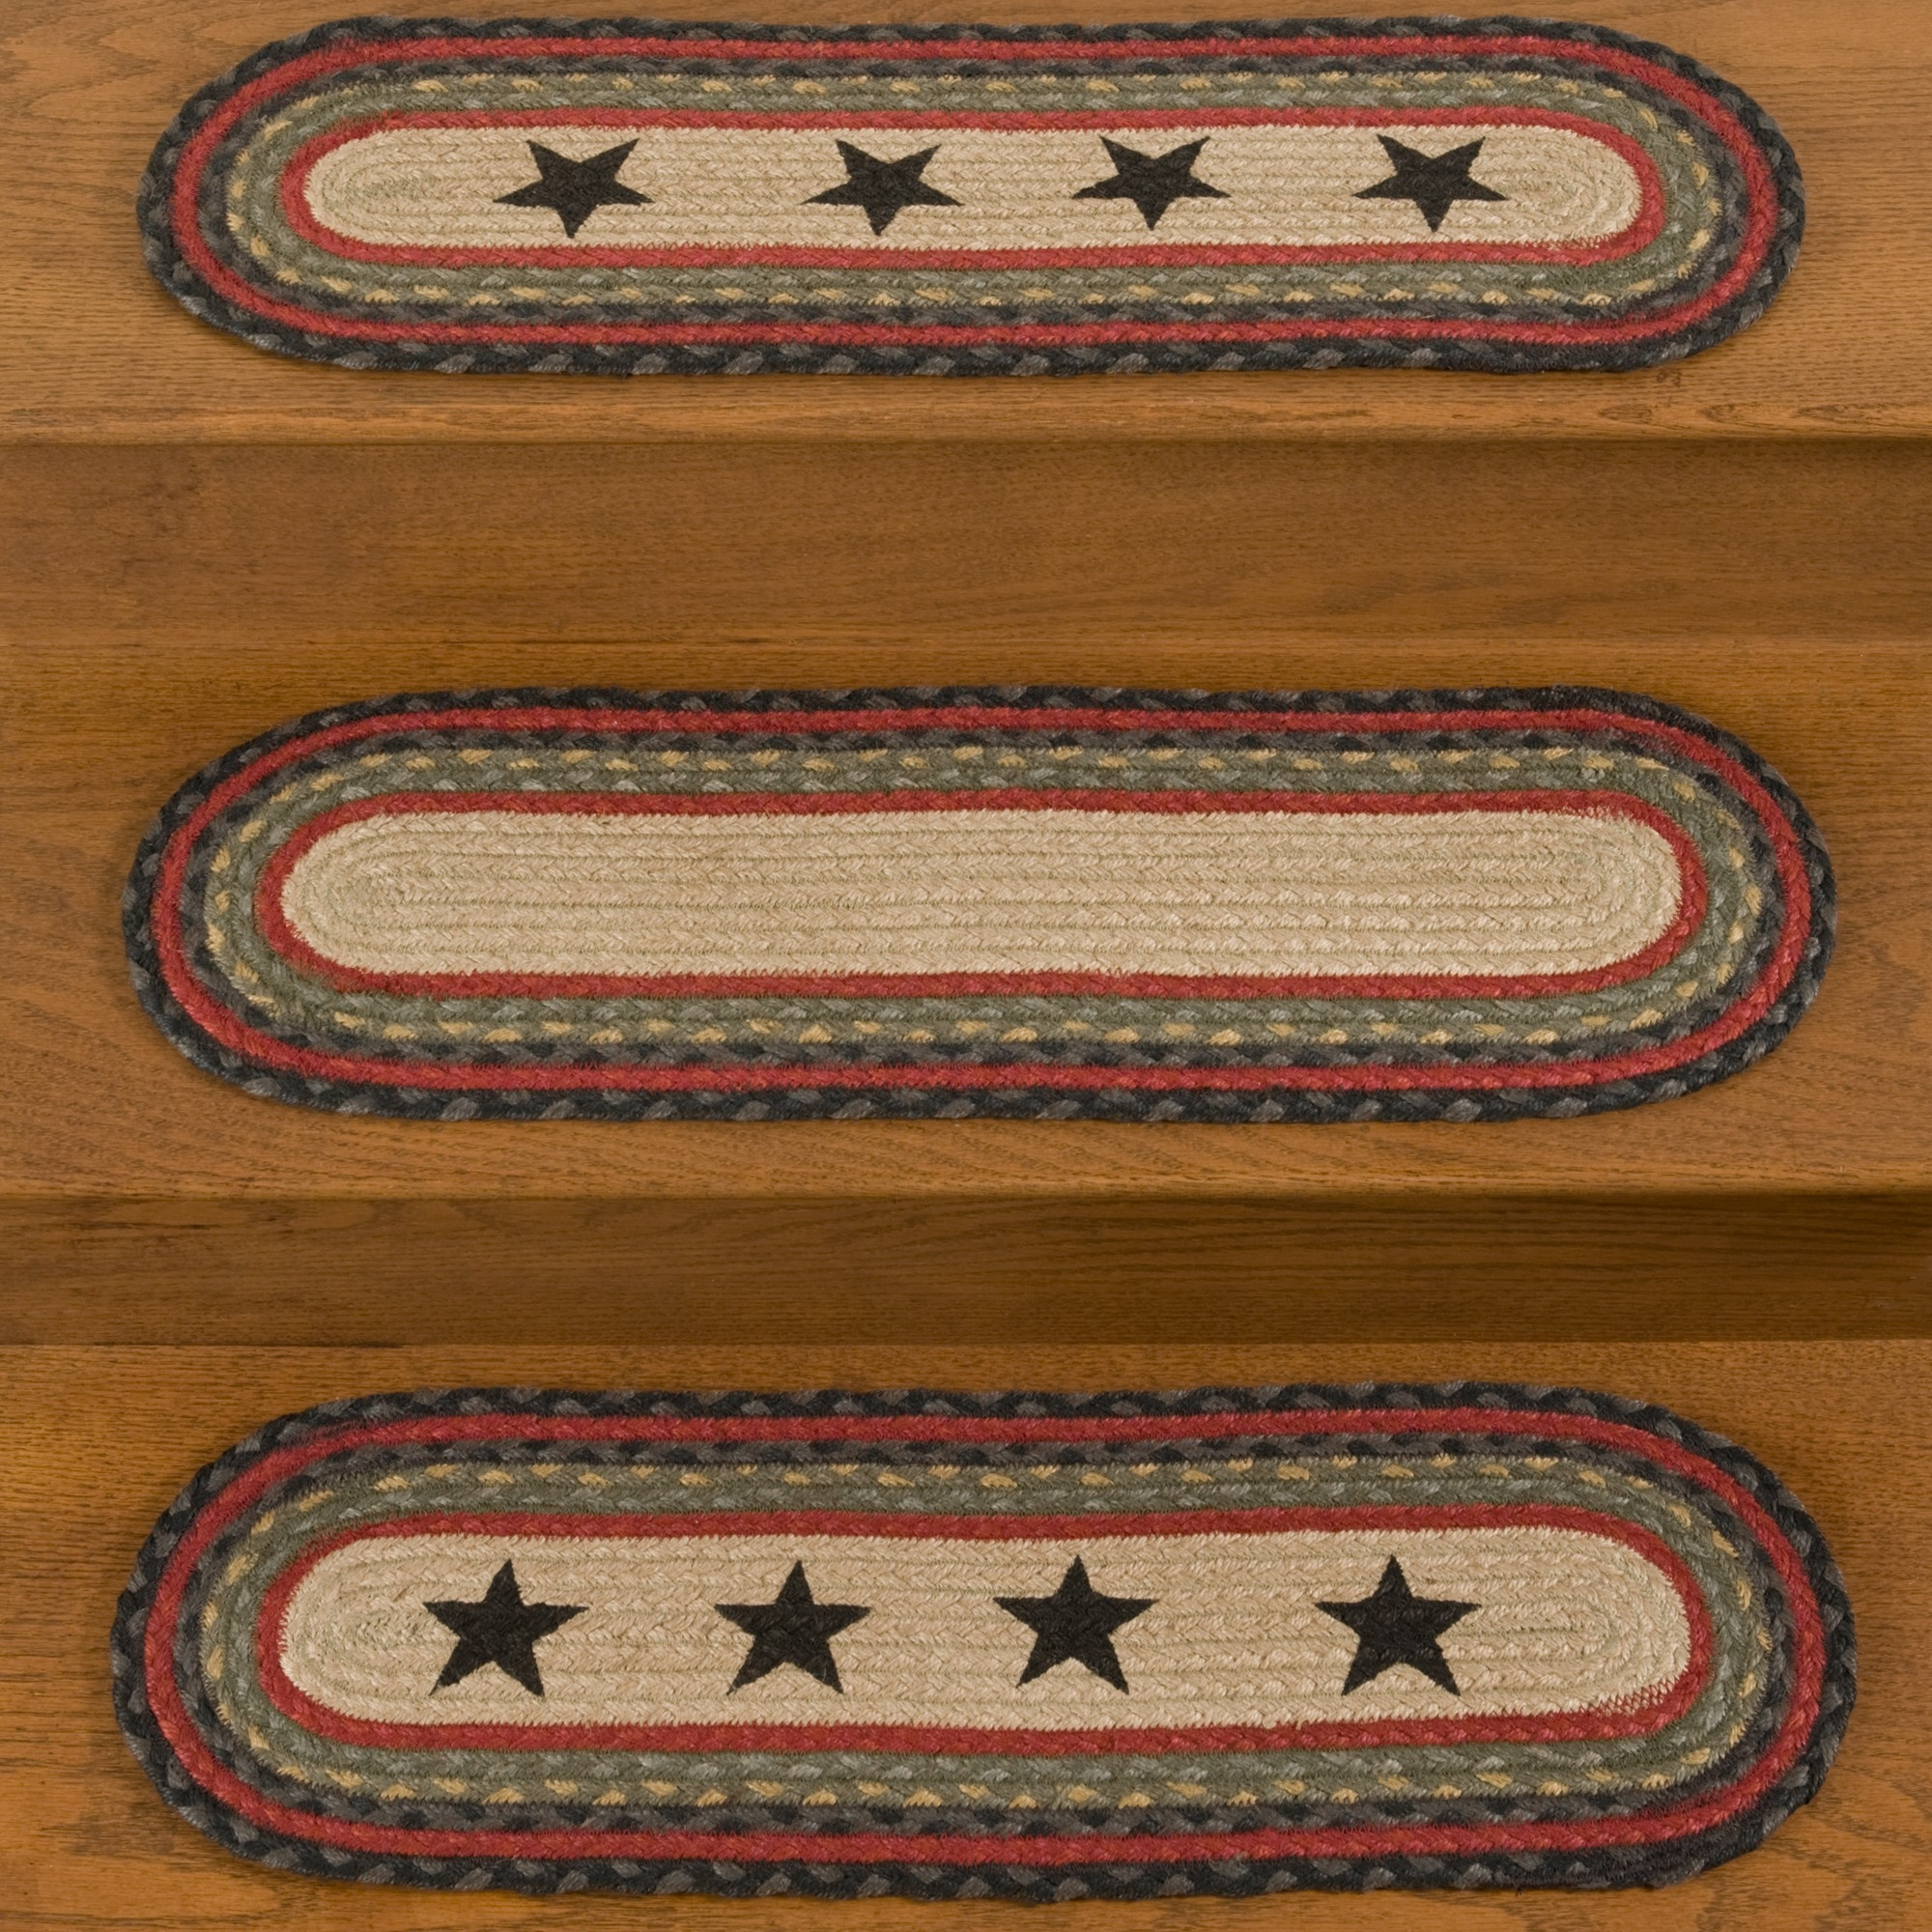 Braided Stair Tread Rugs Roselawnlutheran Intended For Stair Treads Braided Rugs (Image 2 of 15)